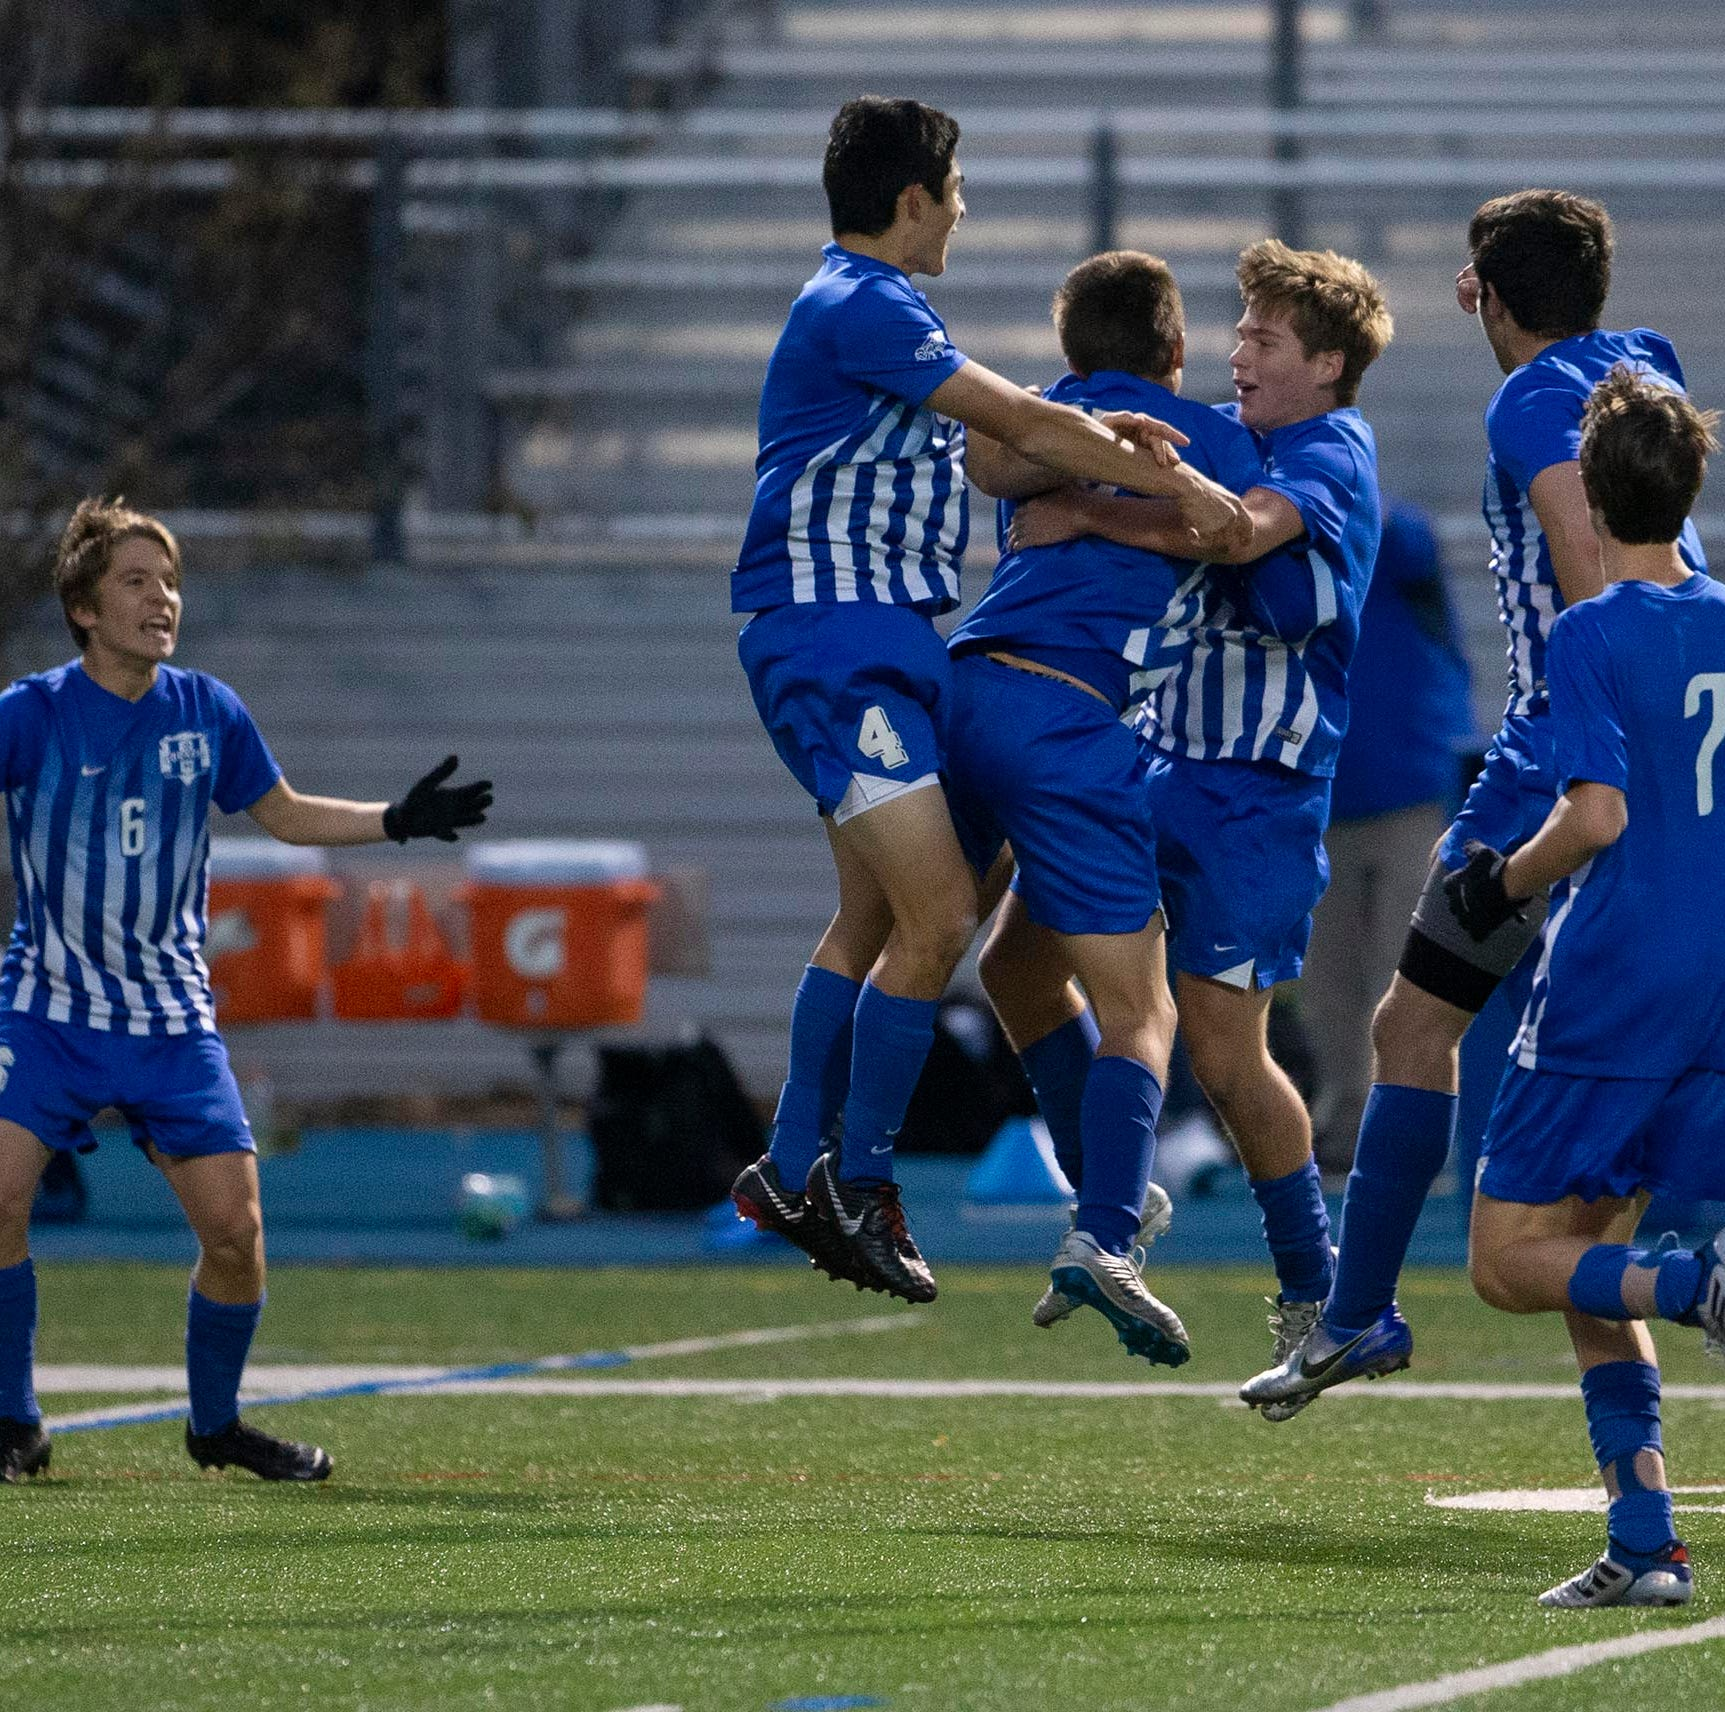 NJ boys soccer: Holmdel wins second straight state title